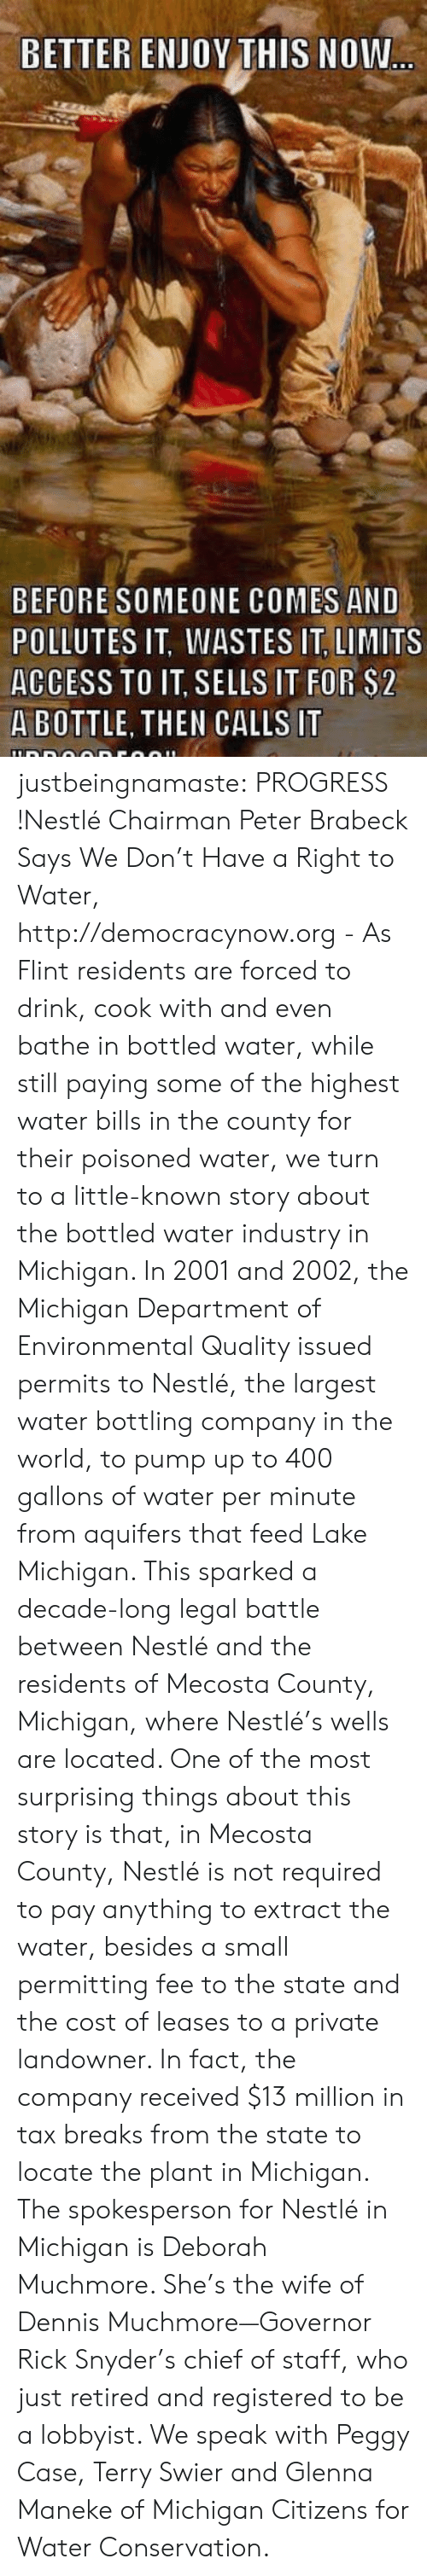 Tumblr, youtube.com, and Access: BETTER ENJOY THIS NOW..  BEFORE SOMEONE COMES AND  POLLUTES IT, WASTES IT, LIMITS  ACCESS TO IT, SELLS IT FOR $2  A BOTTLE, THEN CALLS IT justbeingnamaste:   PROGRESS !Nestlé Chairman Peter Brabeck Says We Don't Have a Right to Water,  http://democracynow.org  - As Flint residents are forced to drink, cook with and even bathe in  bottled water, while still paying some of the highest water bills in the  county for their poisoned water, we turn to a little-known story about  the bottled water industry in Michigan. In 2001 and 2002, the Michigan  Department of Environmental Quality issued permits to Nestlé, the  largest water bottling company in the world, to pump up to 400 gallons  of water per minute from aquifers that feed Lake Michigan. This sparked a  decade-long legal battle between Nestlé and the residents of Mecosta  County, Michigan, where Nestlé's wells are located. One of the most  surprising things about this story is that, in Mecosta County, Nestlé is  not required to pay anything to extract the water, besides a small  permitting fee to the state and the cost of leases to a private  landowner. In fact, the company received $13 million in tax breaks from  the state to locate the plant in Michigan. The spokesperson for Nestlé  in Michigan is Deborah Muchmore. She's the wife of Dennis  Muchmore—Governor Rick Snyder's chief of staff, who just retired and  registered to be a lobbyist. We speak with Peggy Case, Terry Swier and  Glenna Maneke of Michigan Citizens for Water Conservation.